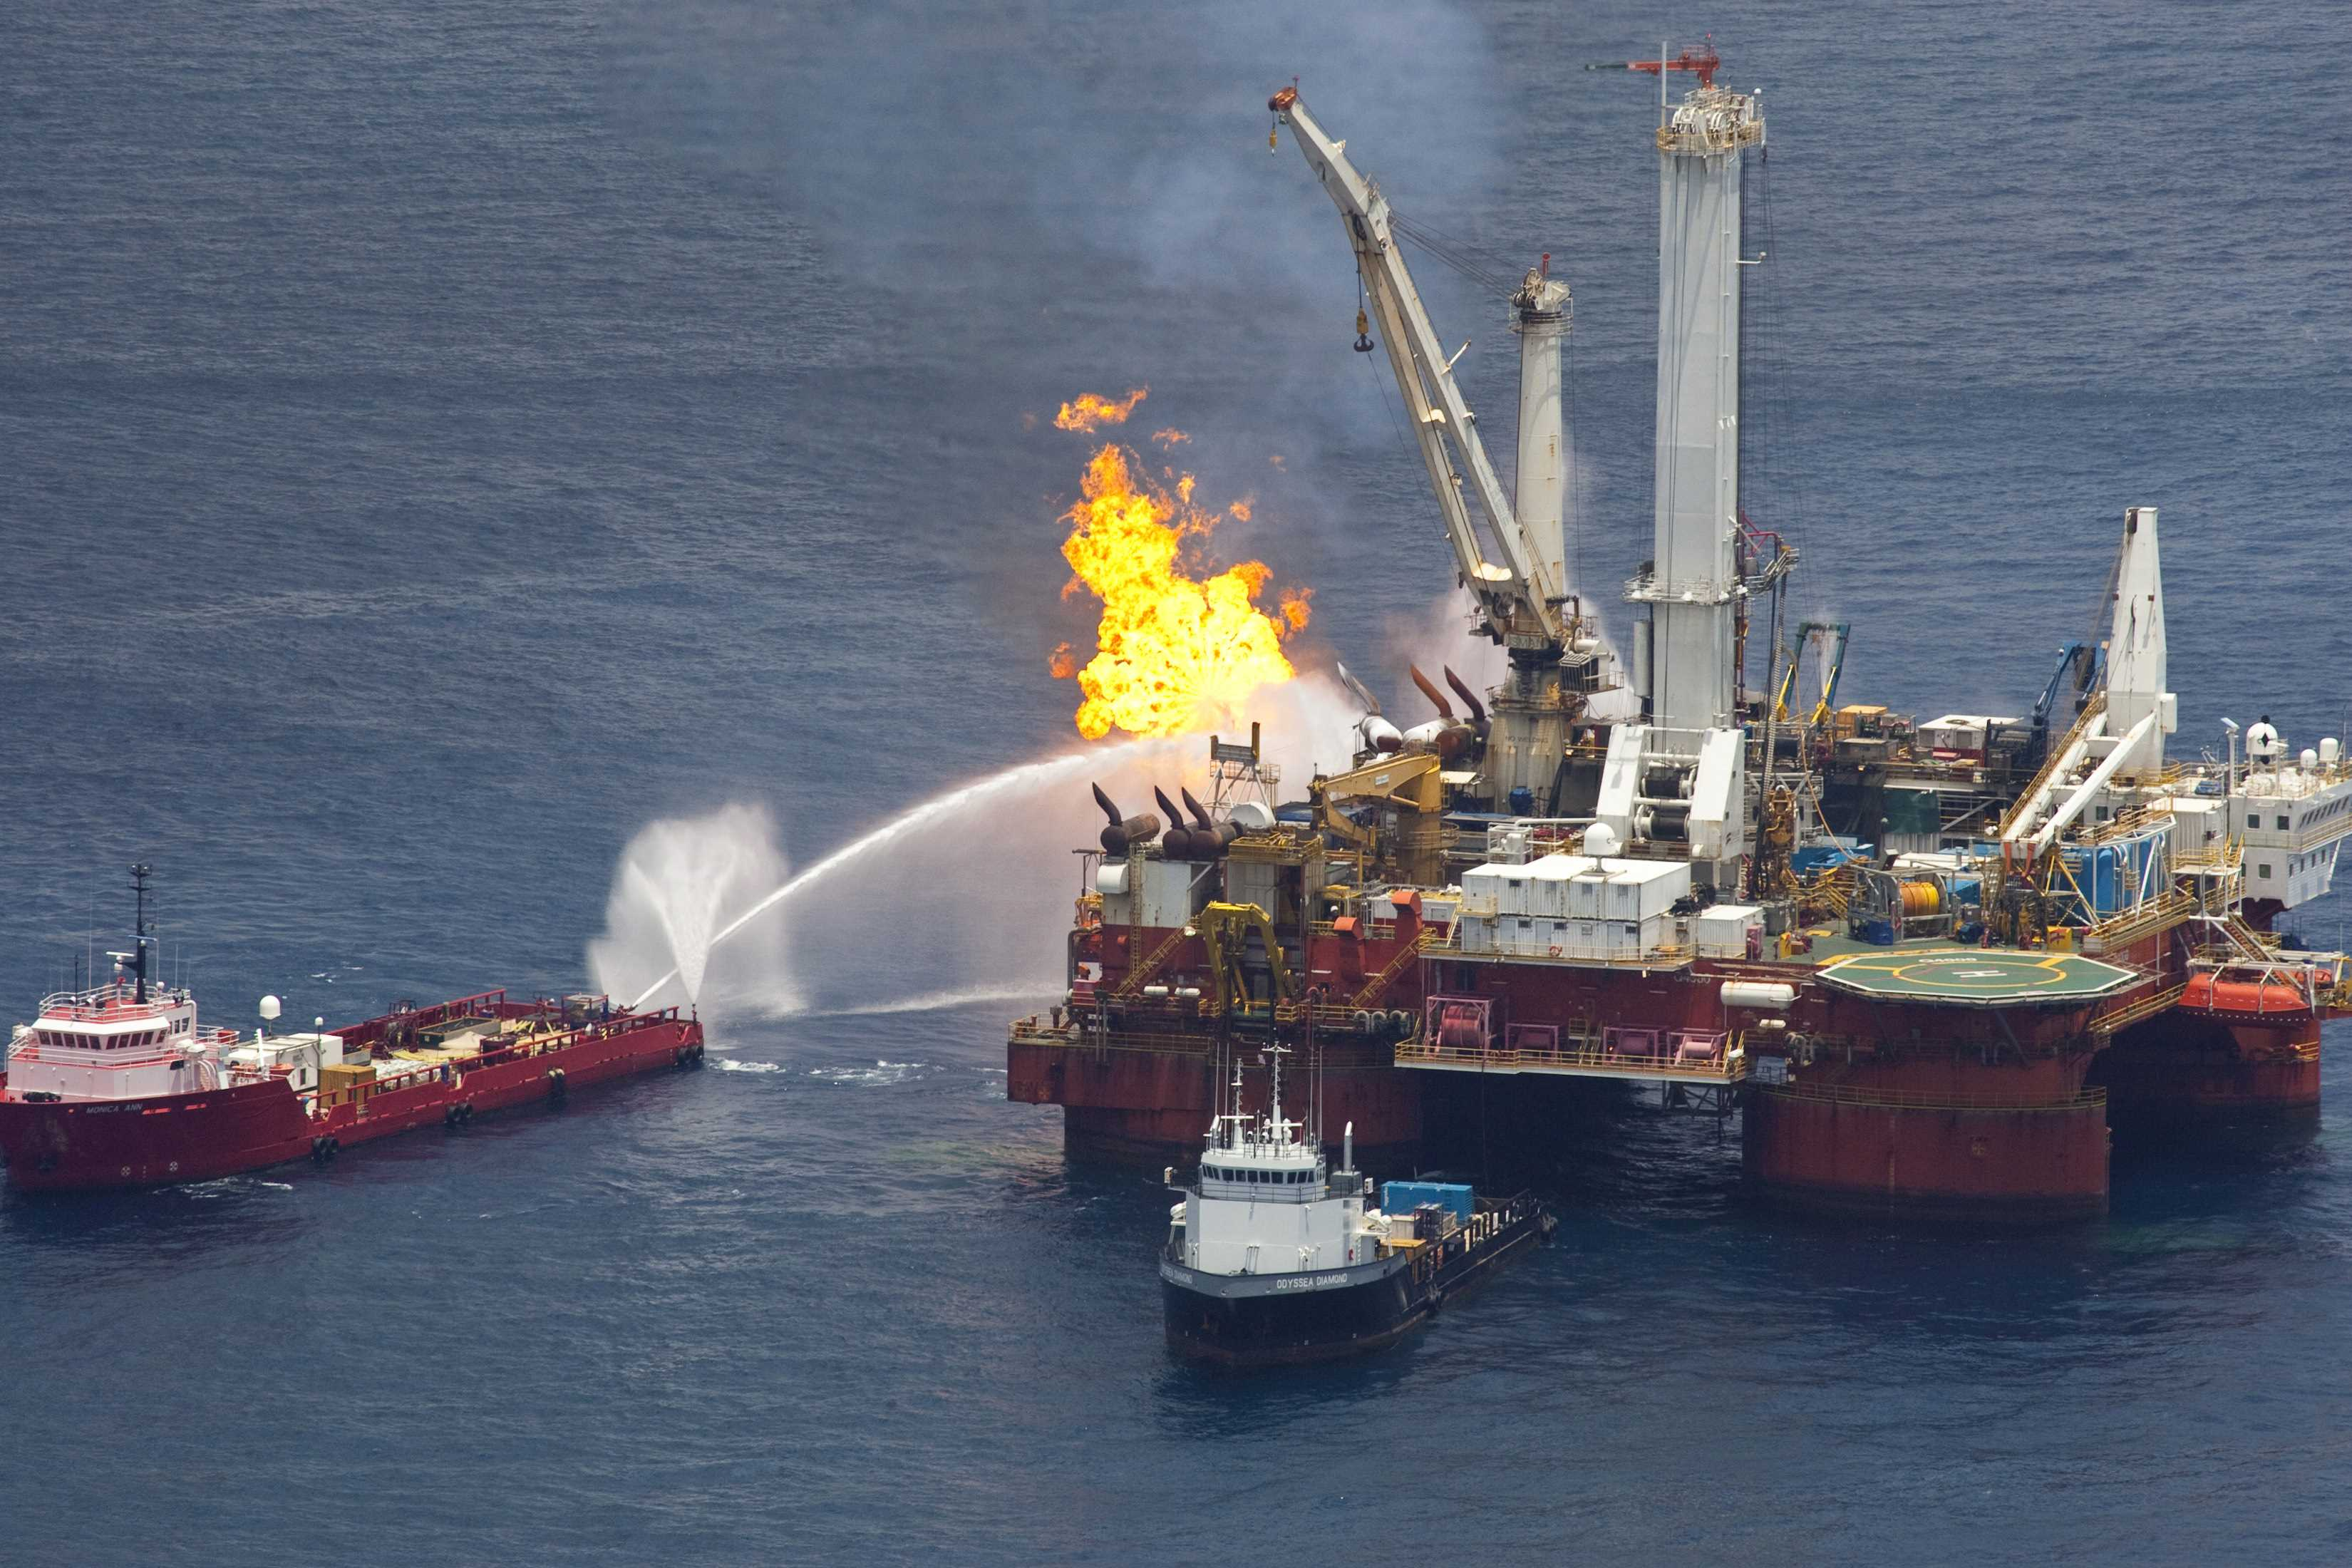 Supreme Court rejects Deepwater Horizon spill penalties appeal